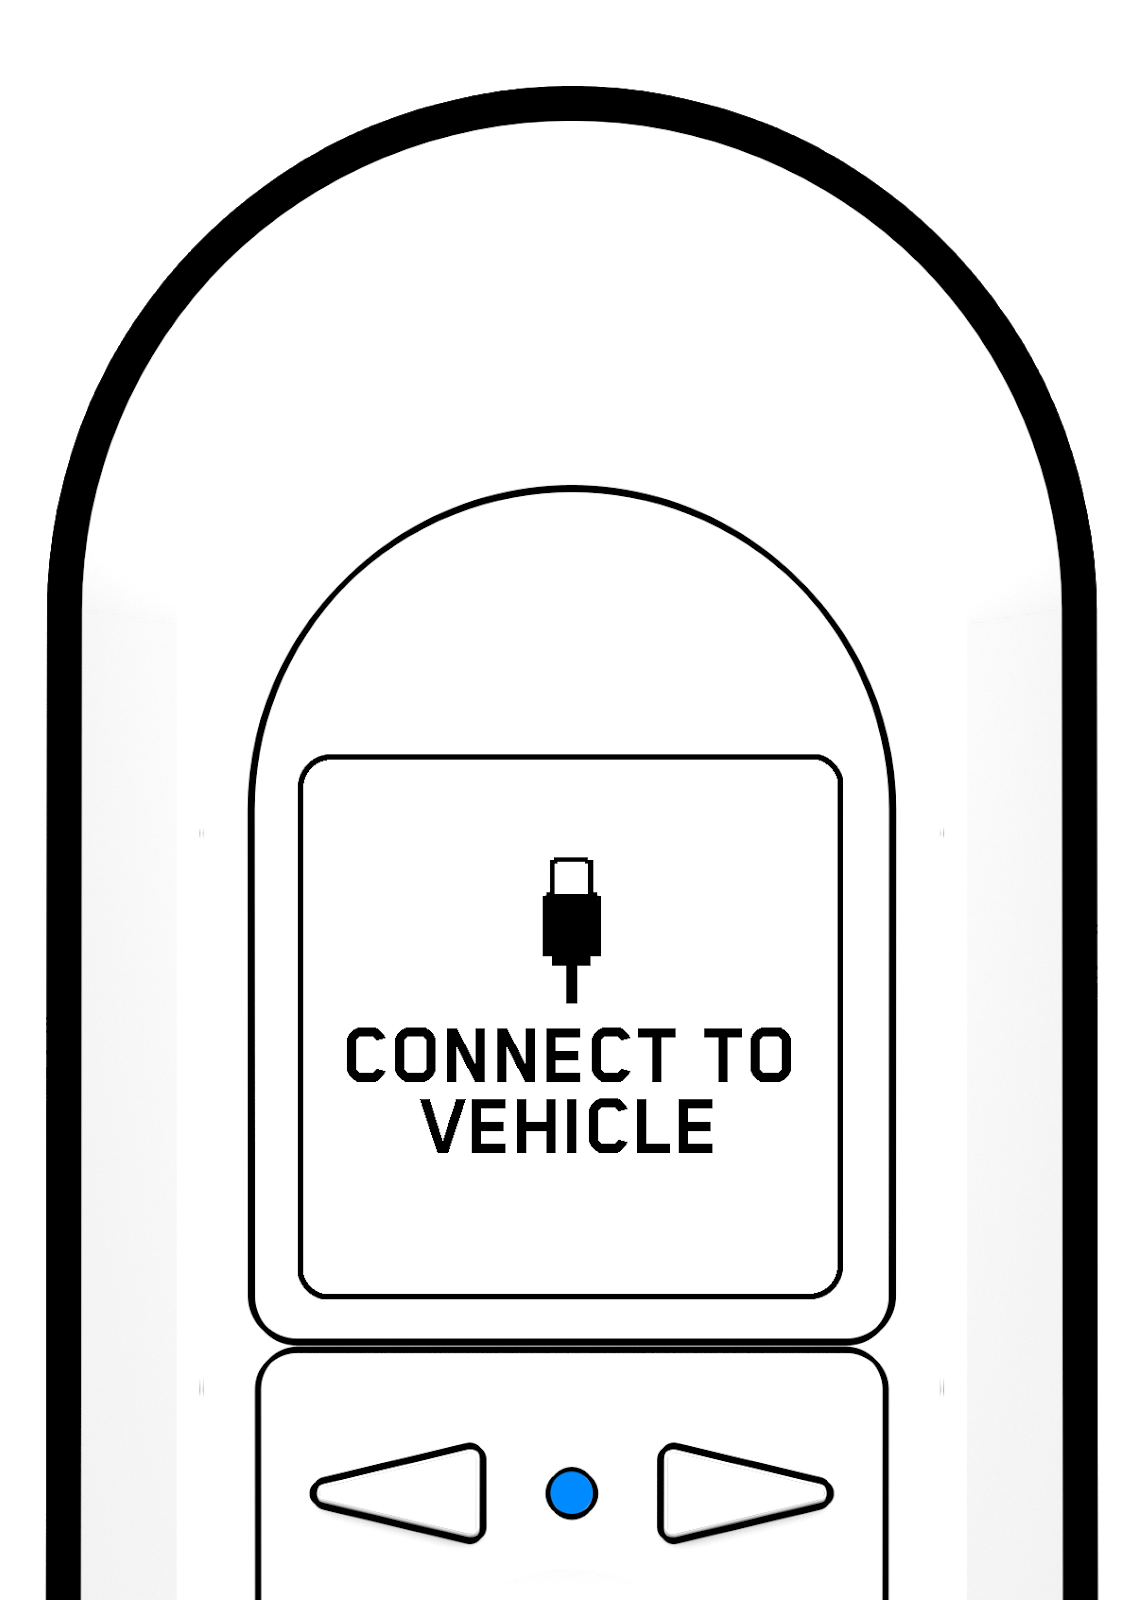 beacon-connecttovehicle.png